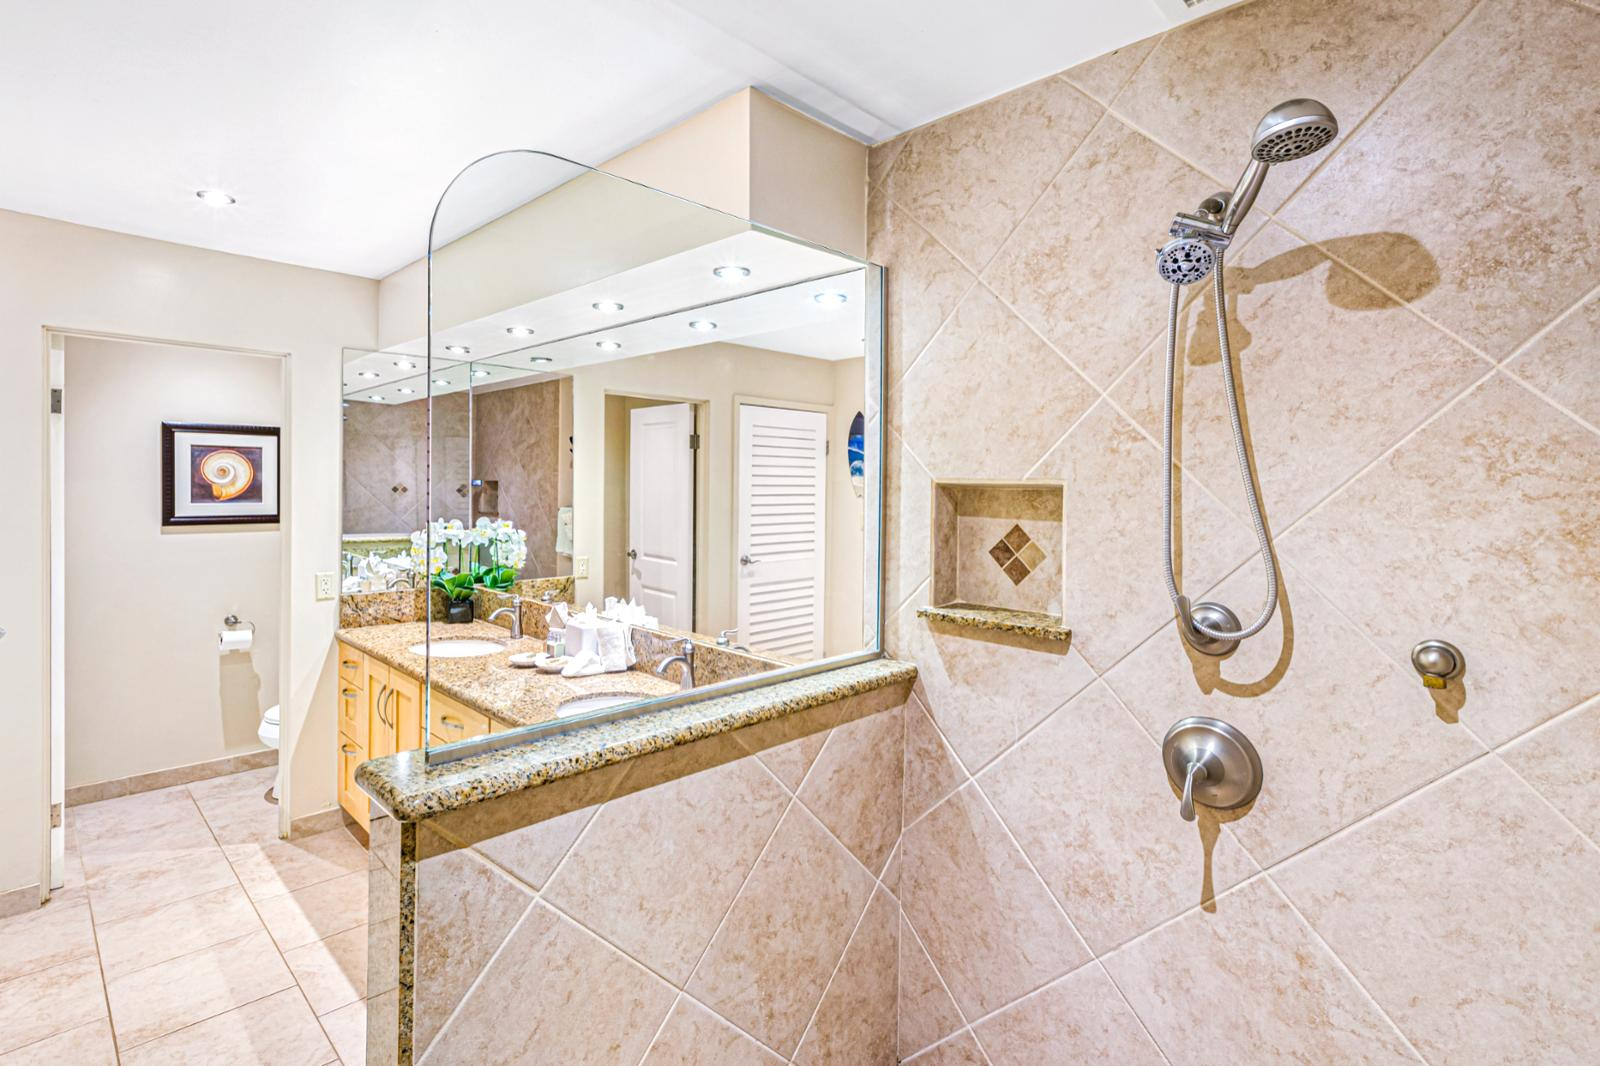 Amazing walk-in shower right off the bathroom!